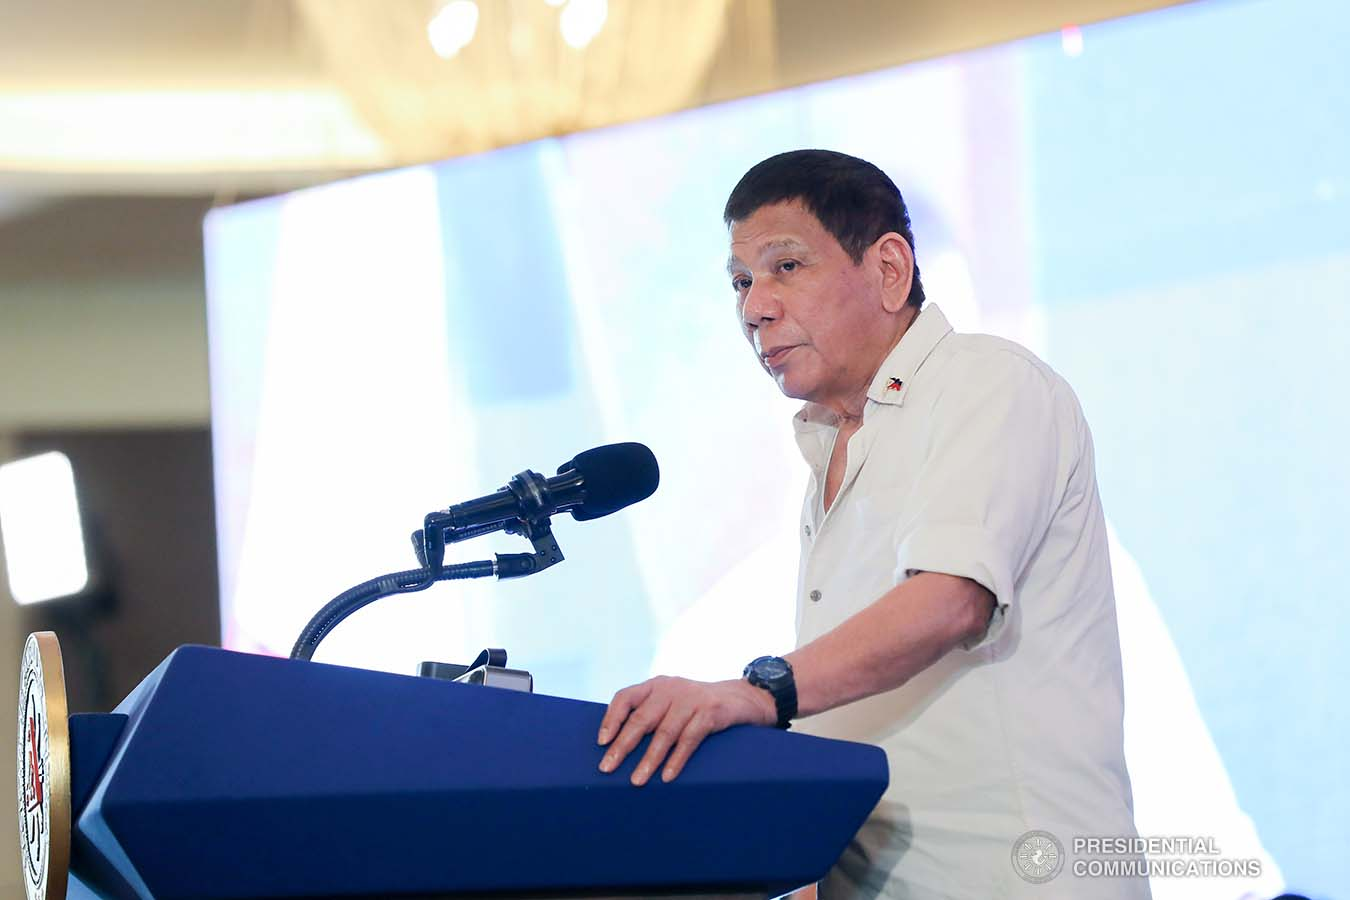 President Rodrigo Roa Duterte delivers his speech during the Joint National Task Force-Regional Task Force to End Local Communist Armed Conflict (NTF-RTF ELCAC) Region 8 meeting at the Summit Hotel in Tacloban City, Leyte on March 18, 2021. ALFRED FRIAS/ PRESIDENTIAL PHOTO